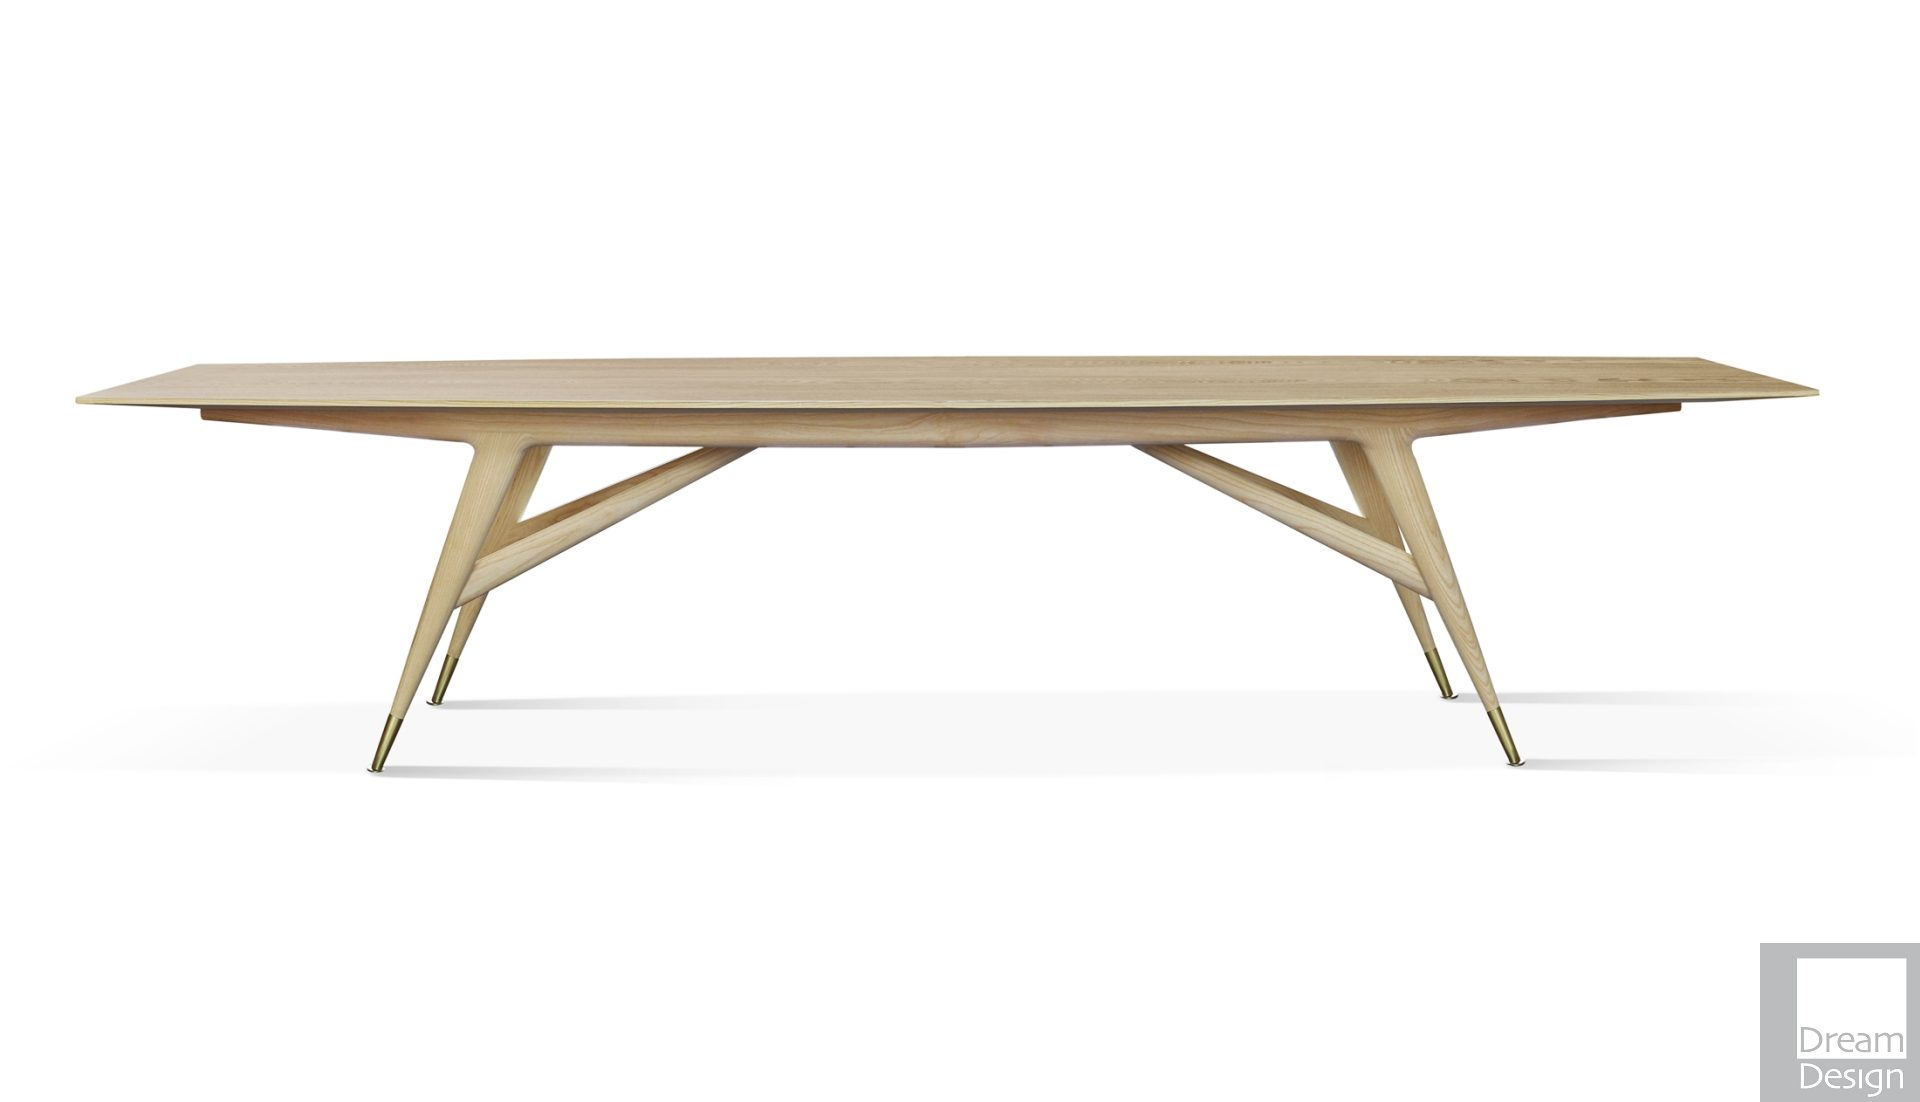 Molteni&C Gio Ponti D.859.1 Table